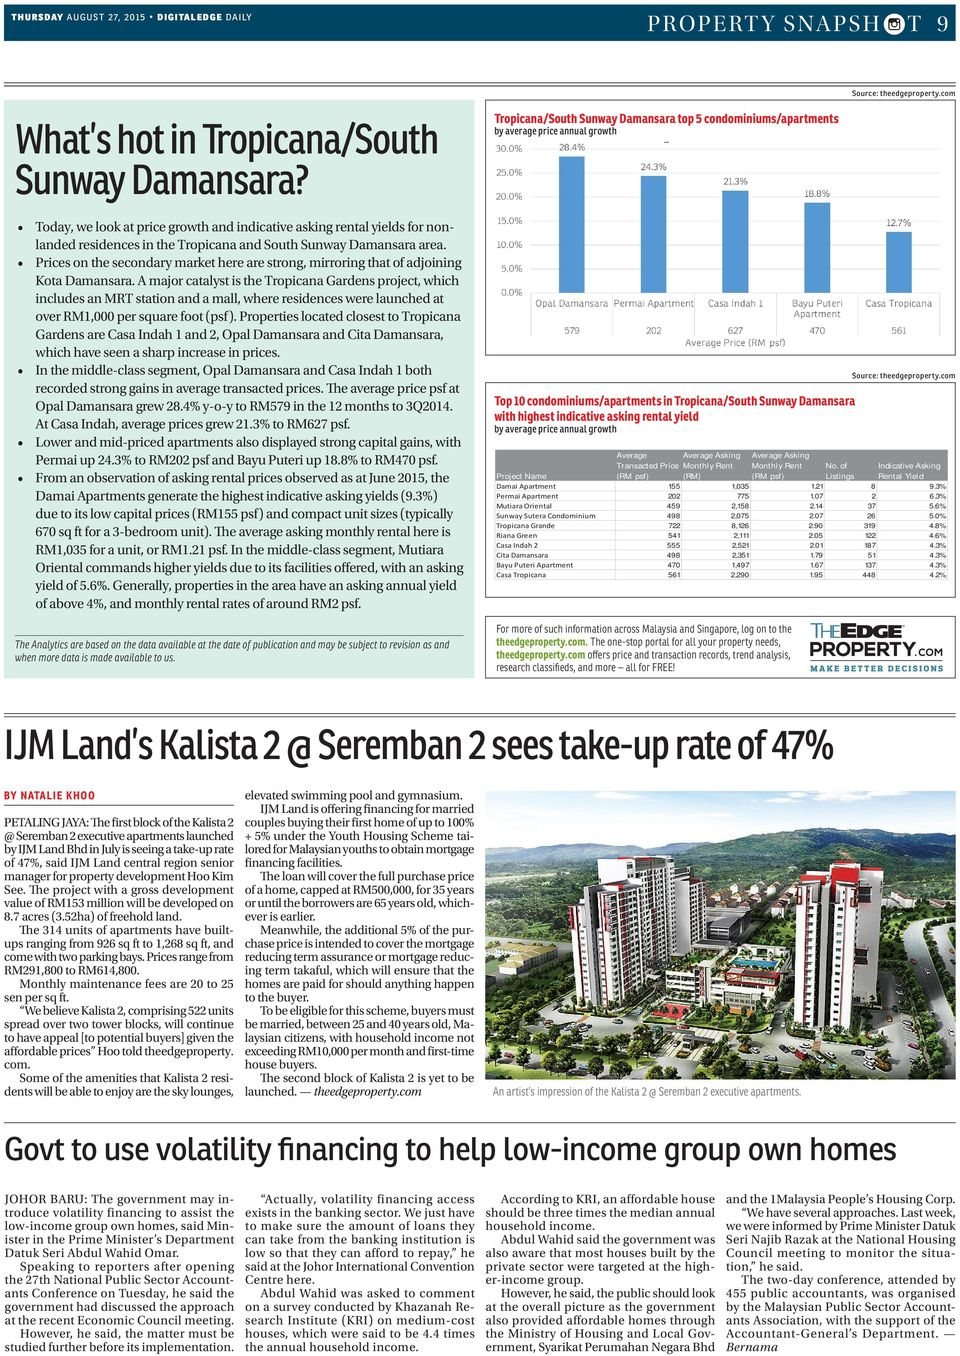 Prices on the secondary market here are strong, mirroring that of adjoining Kota Damansara.